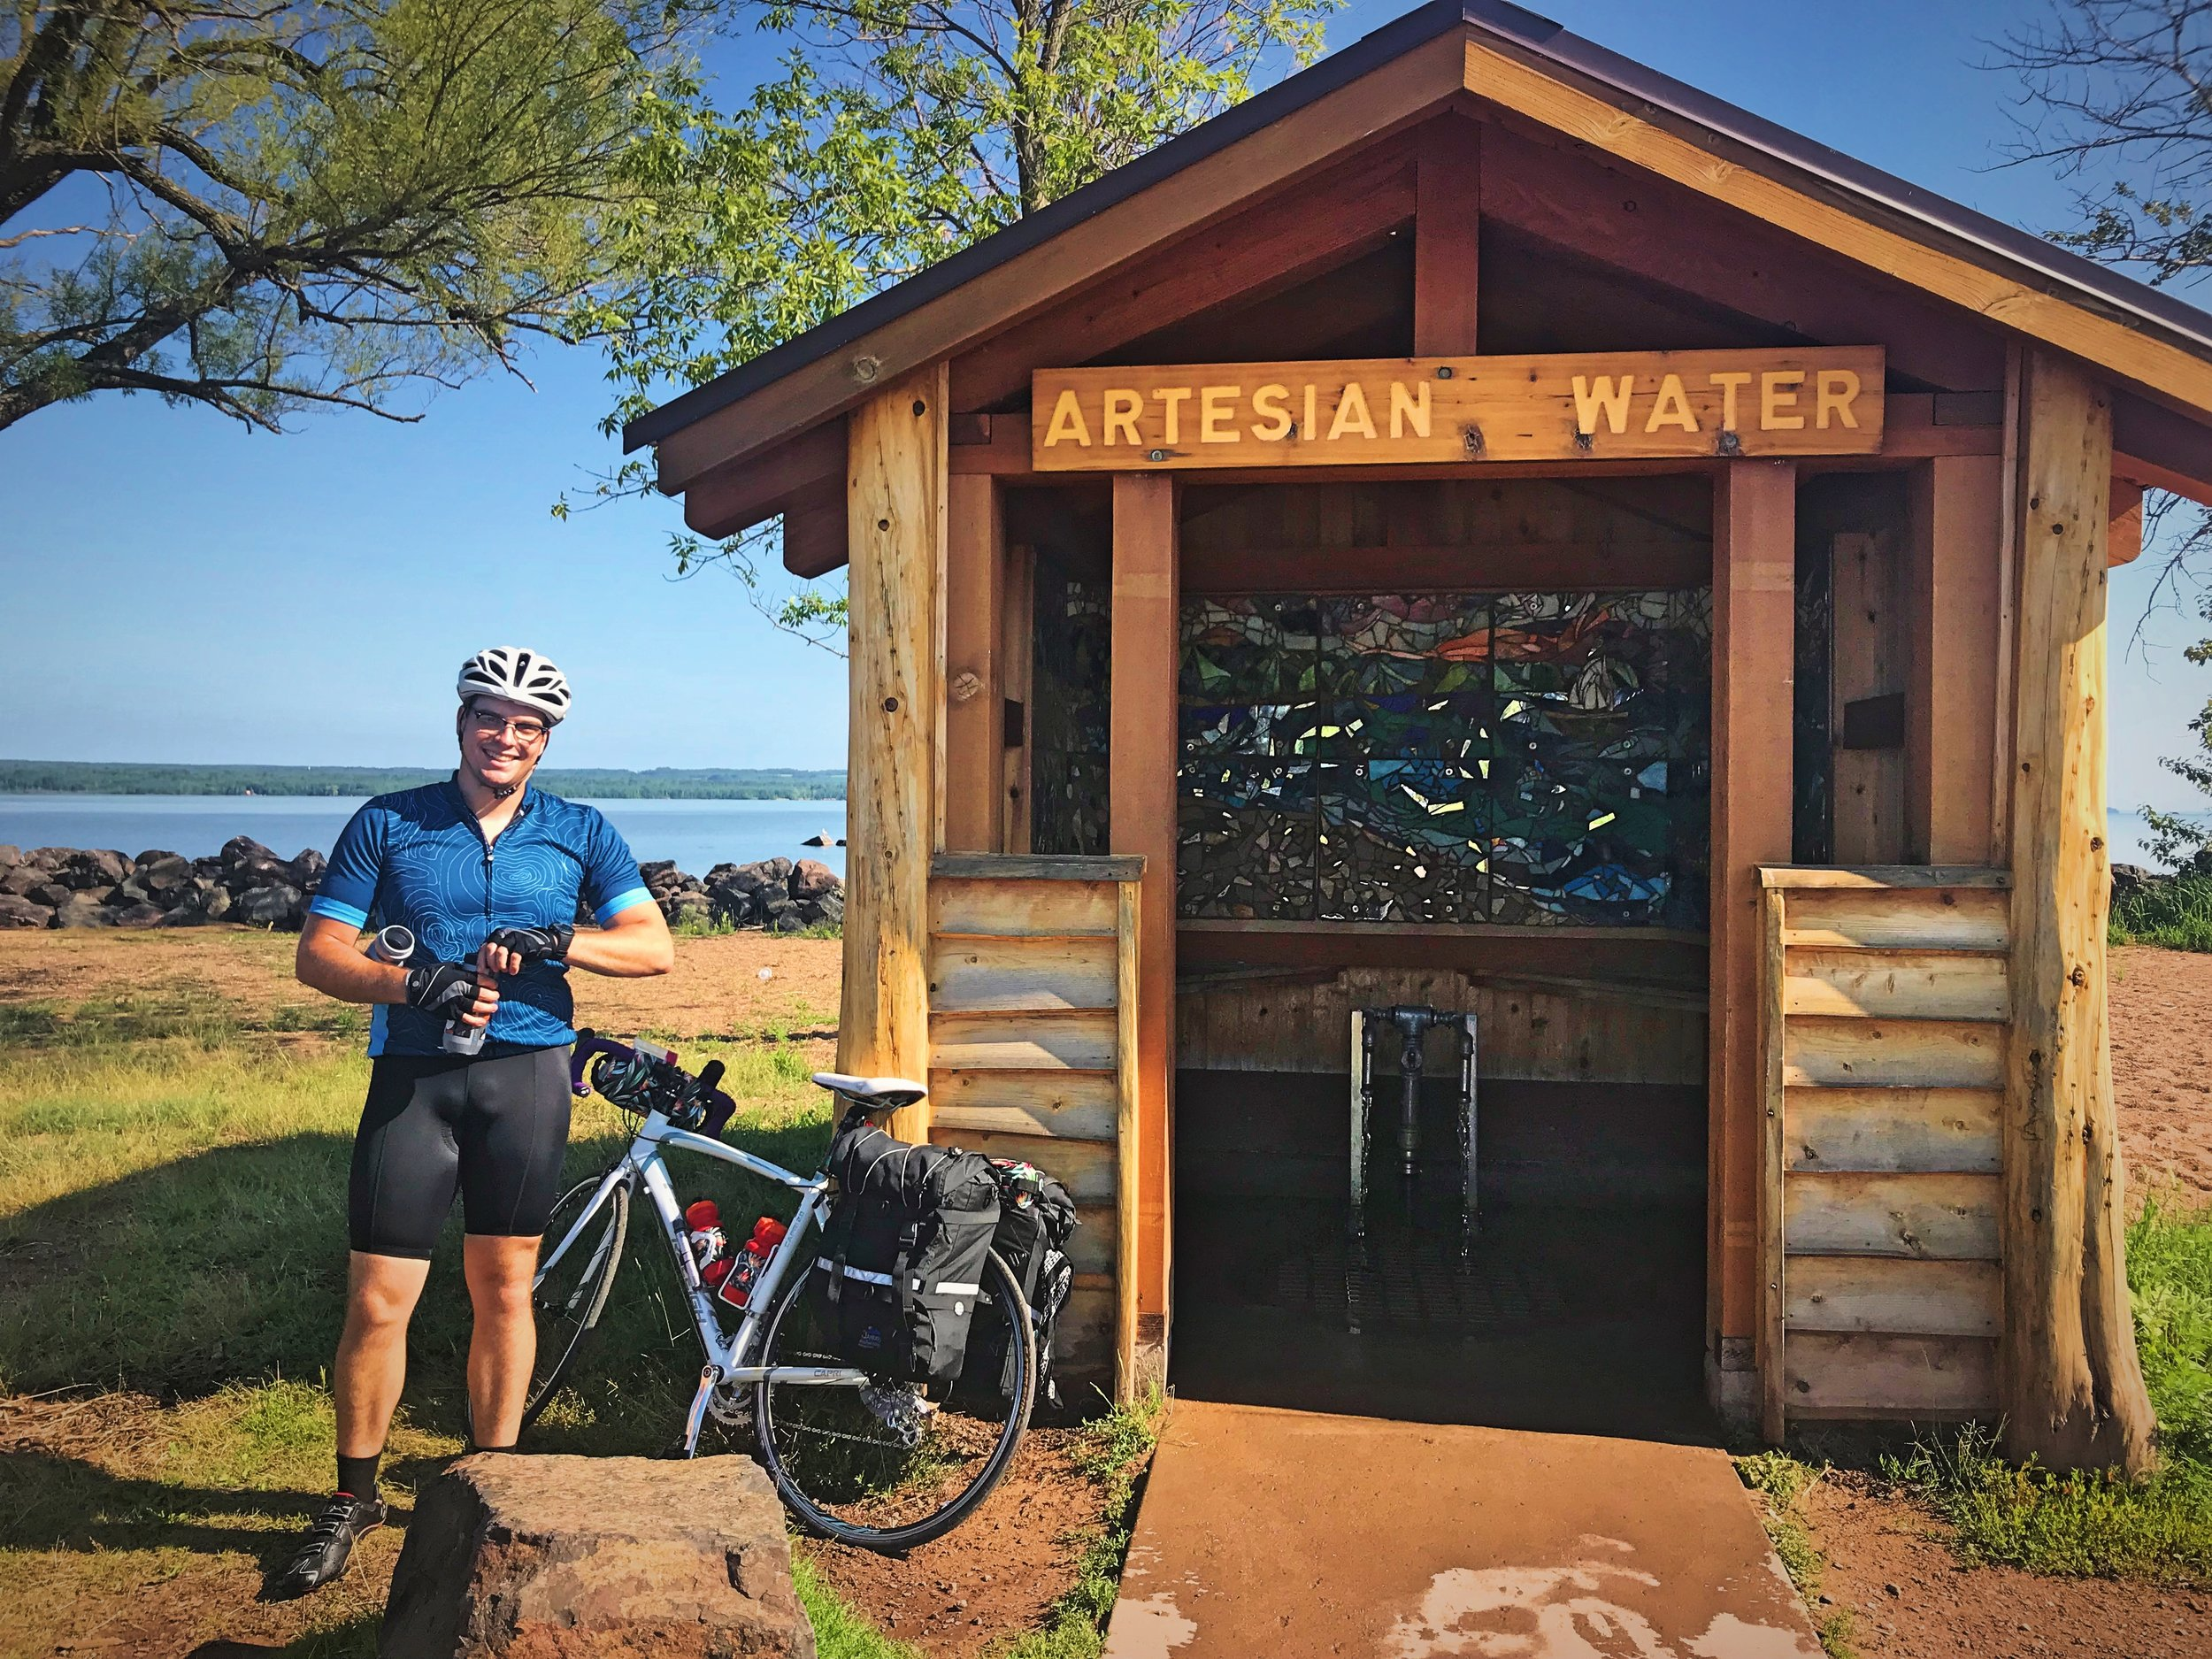 We stopped to fill our water bottles from the Artesian Well at Maslowski Beach in Ashland, WI.